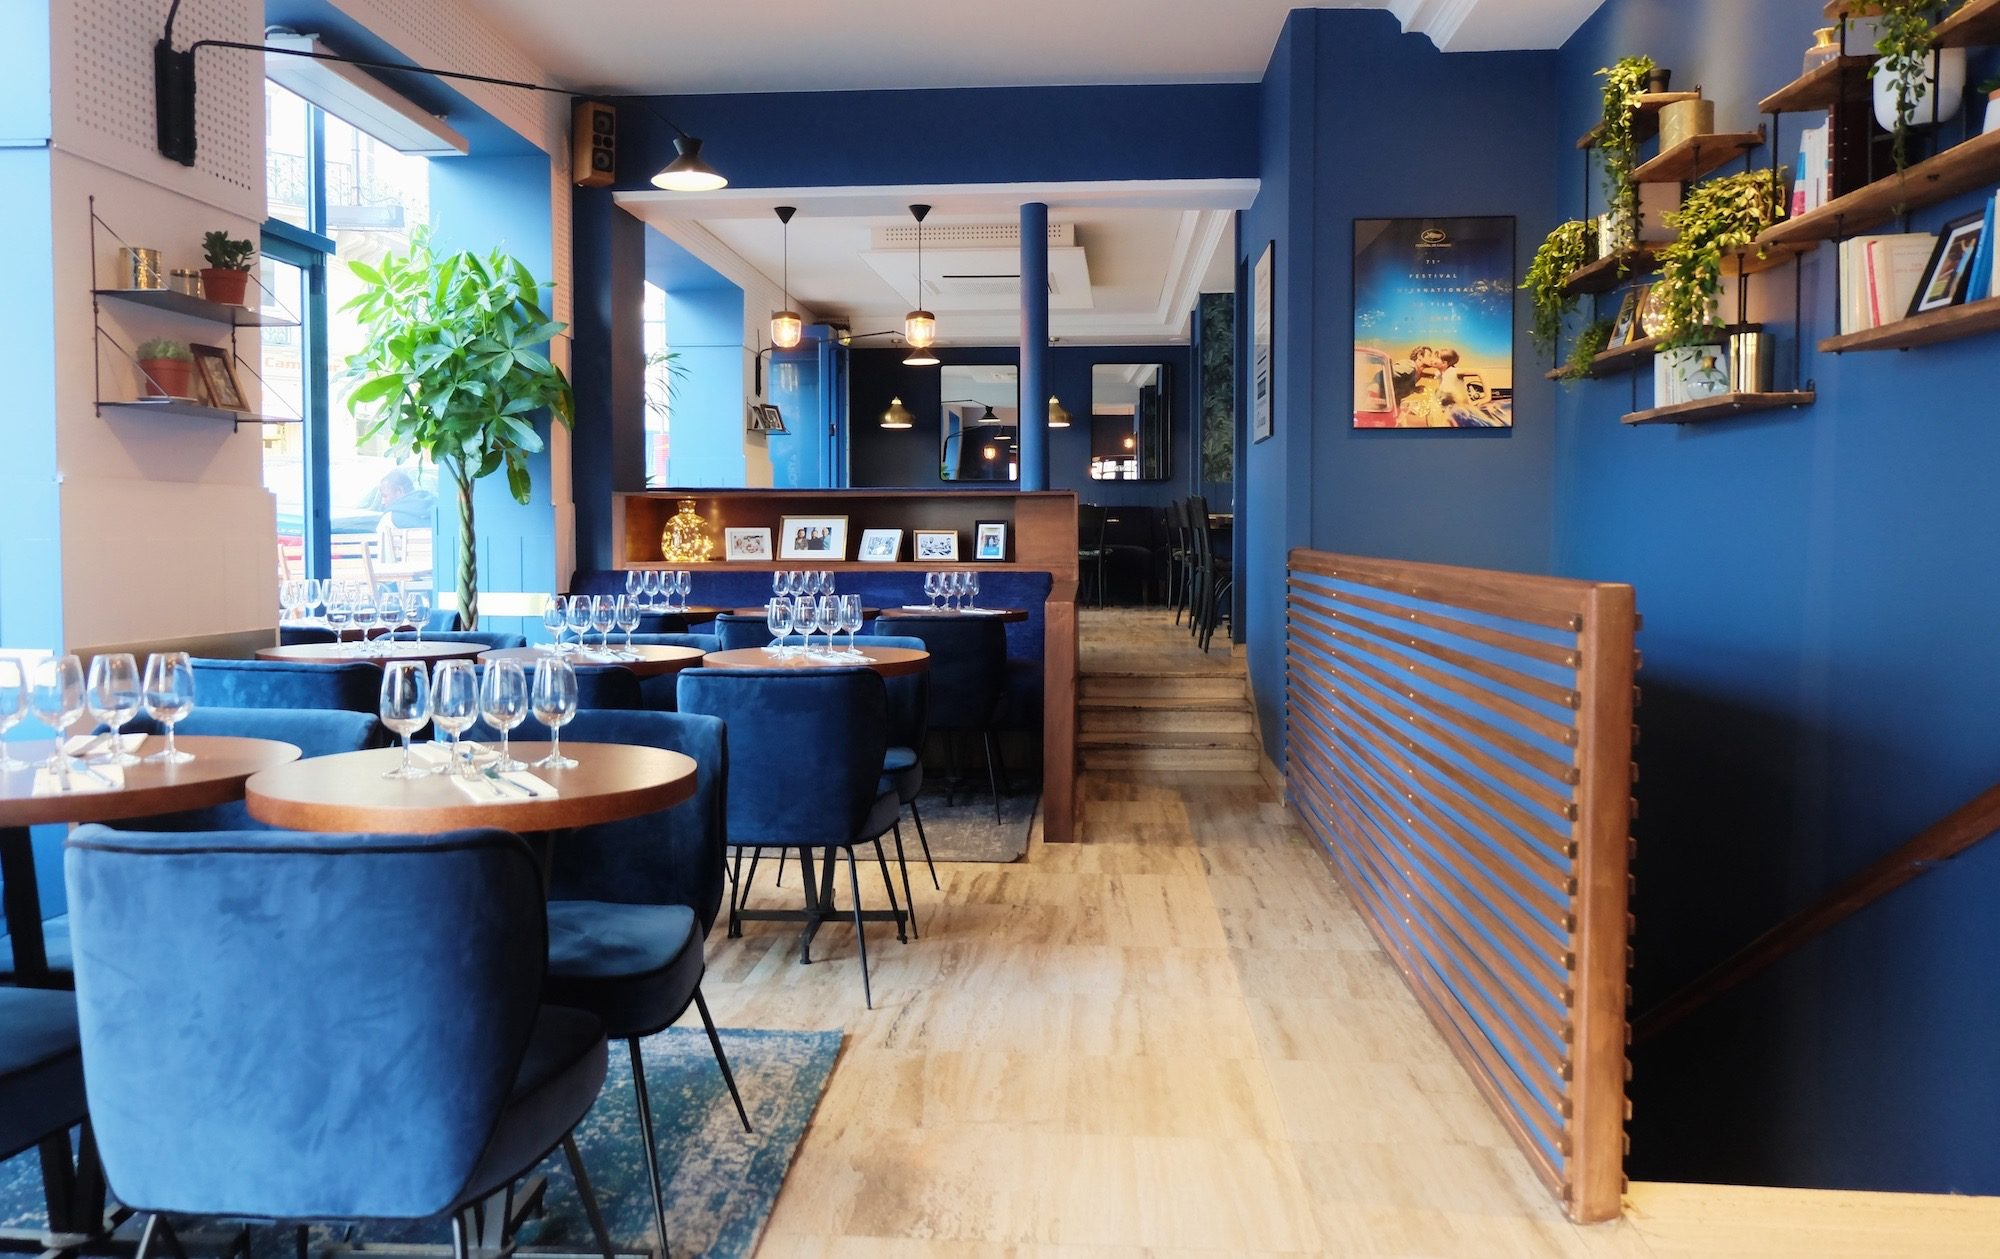 L'Invitée restaurant near Notre Dame Cathedral is one of our favorite spots to eat in Paris for the French food but also for the sleek and cheerful blue interiors